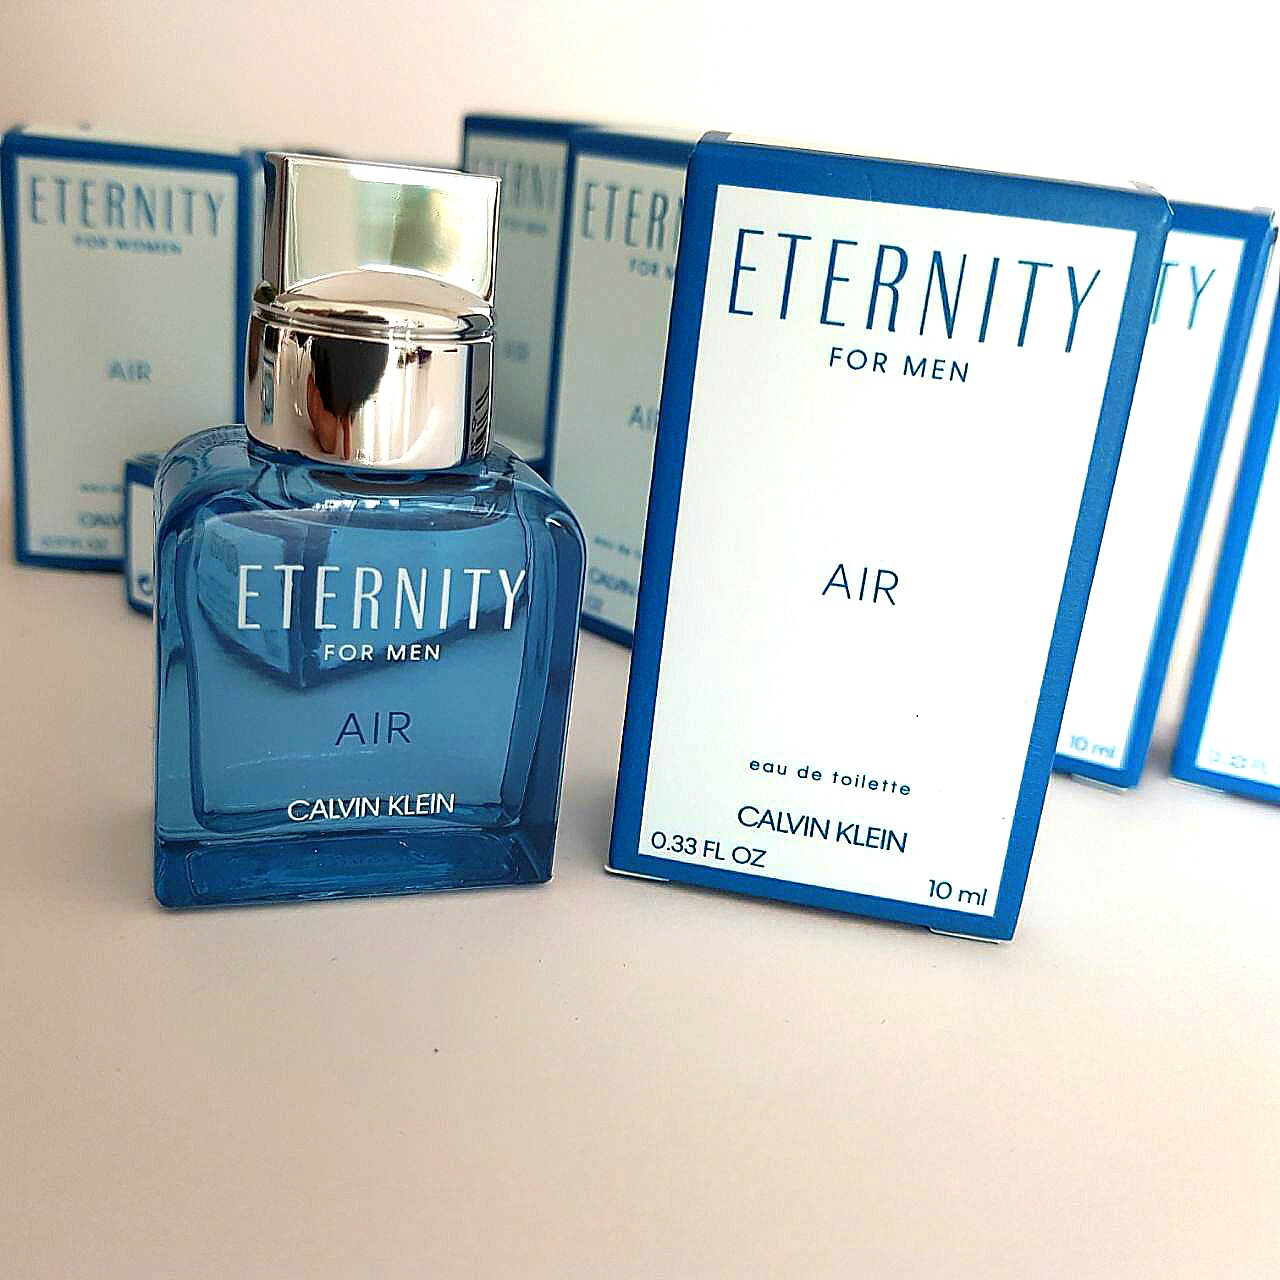 8efbee6ad7b Calvin Klein Eternity Air EDT for Men 10ml mini, Health & Beauty, Perfumes,  Nail Care, & Others on Carousell